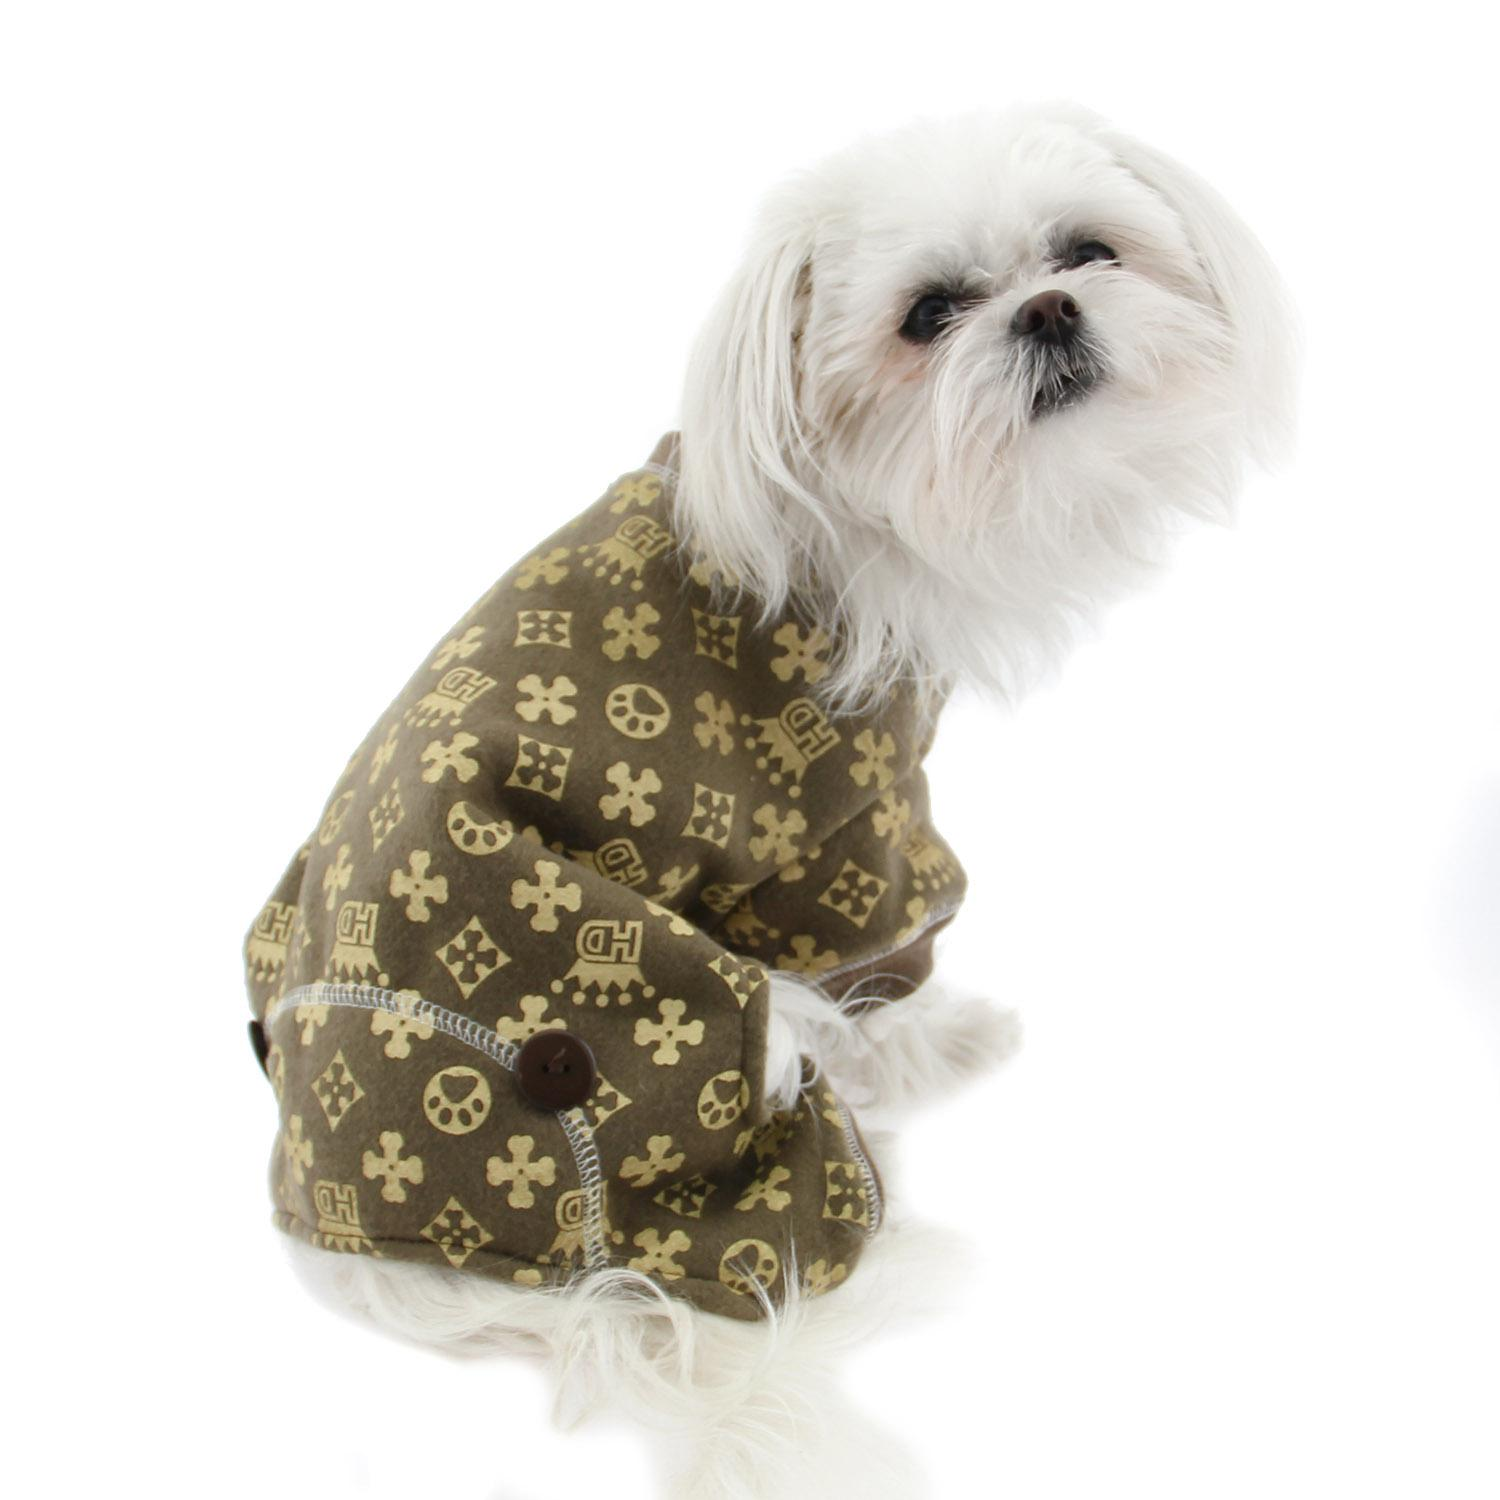 07c3ca19092f Crown Dog Pajamas by Hip Doggie - Brown